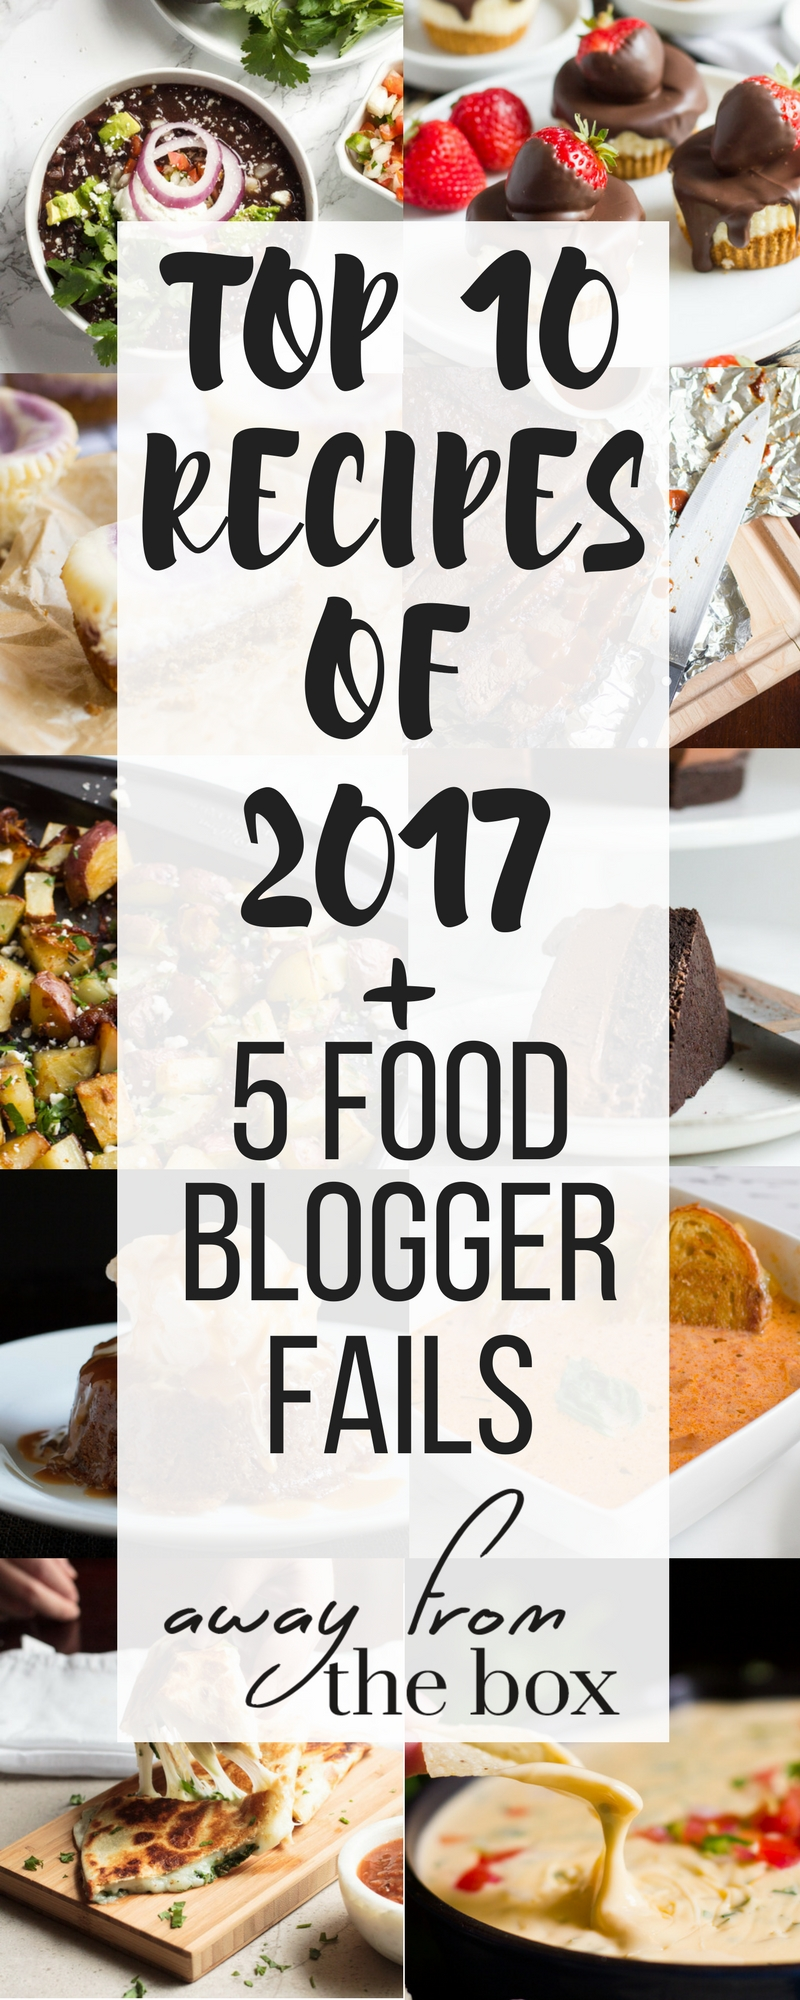 Top 10 recipes and 5 food blogger fails of 2017 away from the box top 10 recipes on away from the box in 2017 also includes never before seen forumfinder Gallery